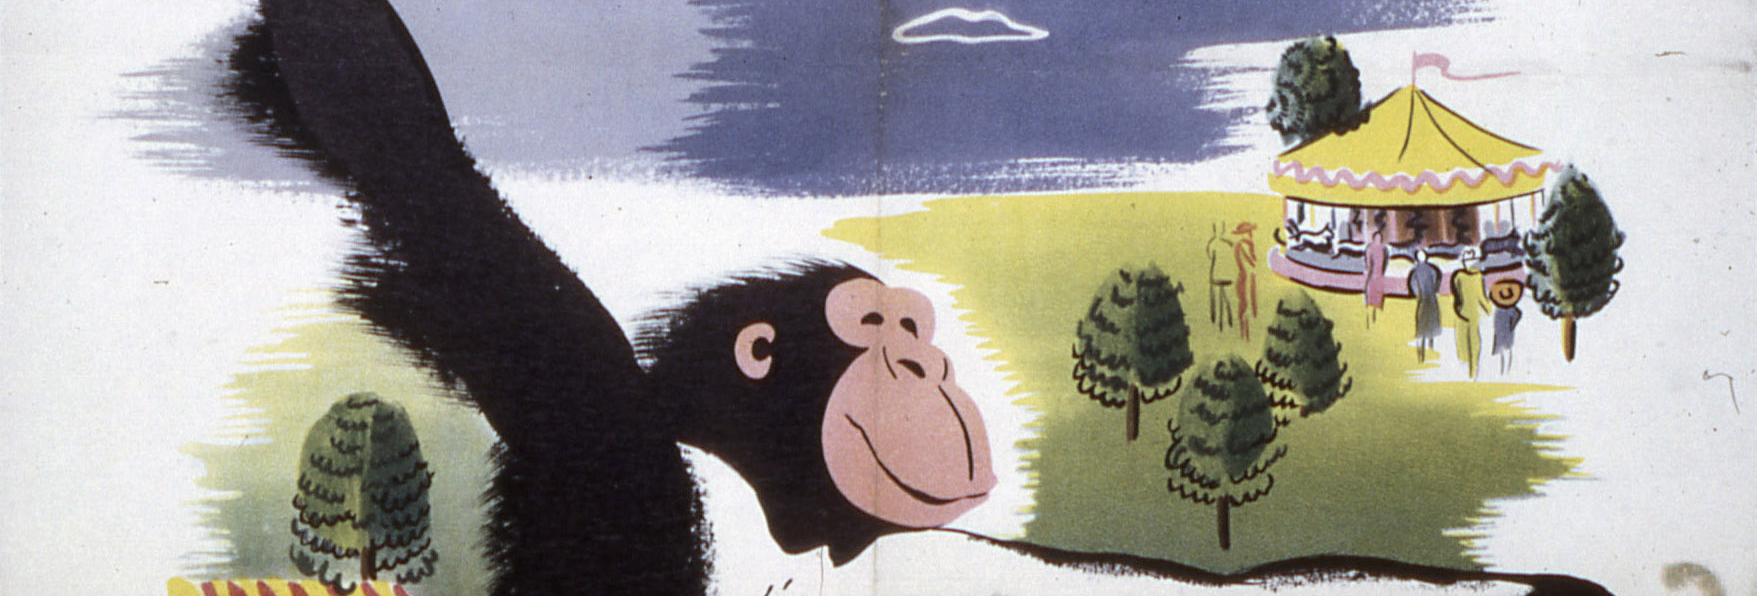 Come to the Zoo' Poster circa 1950s